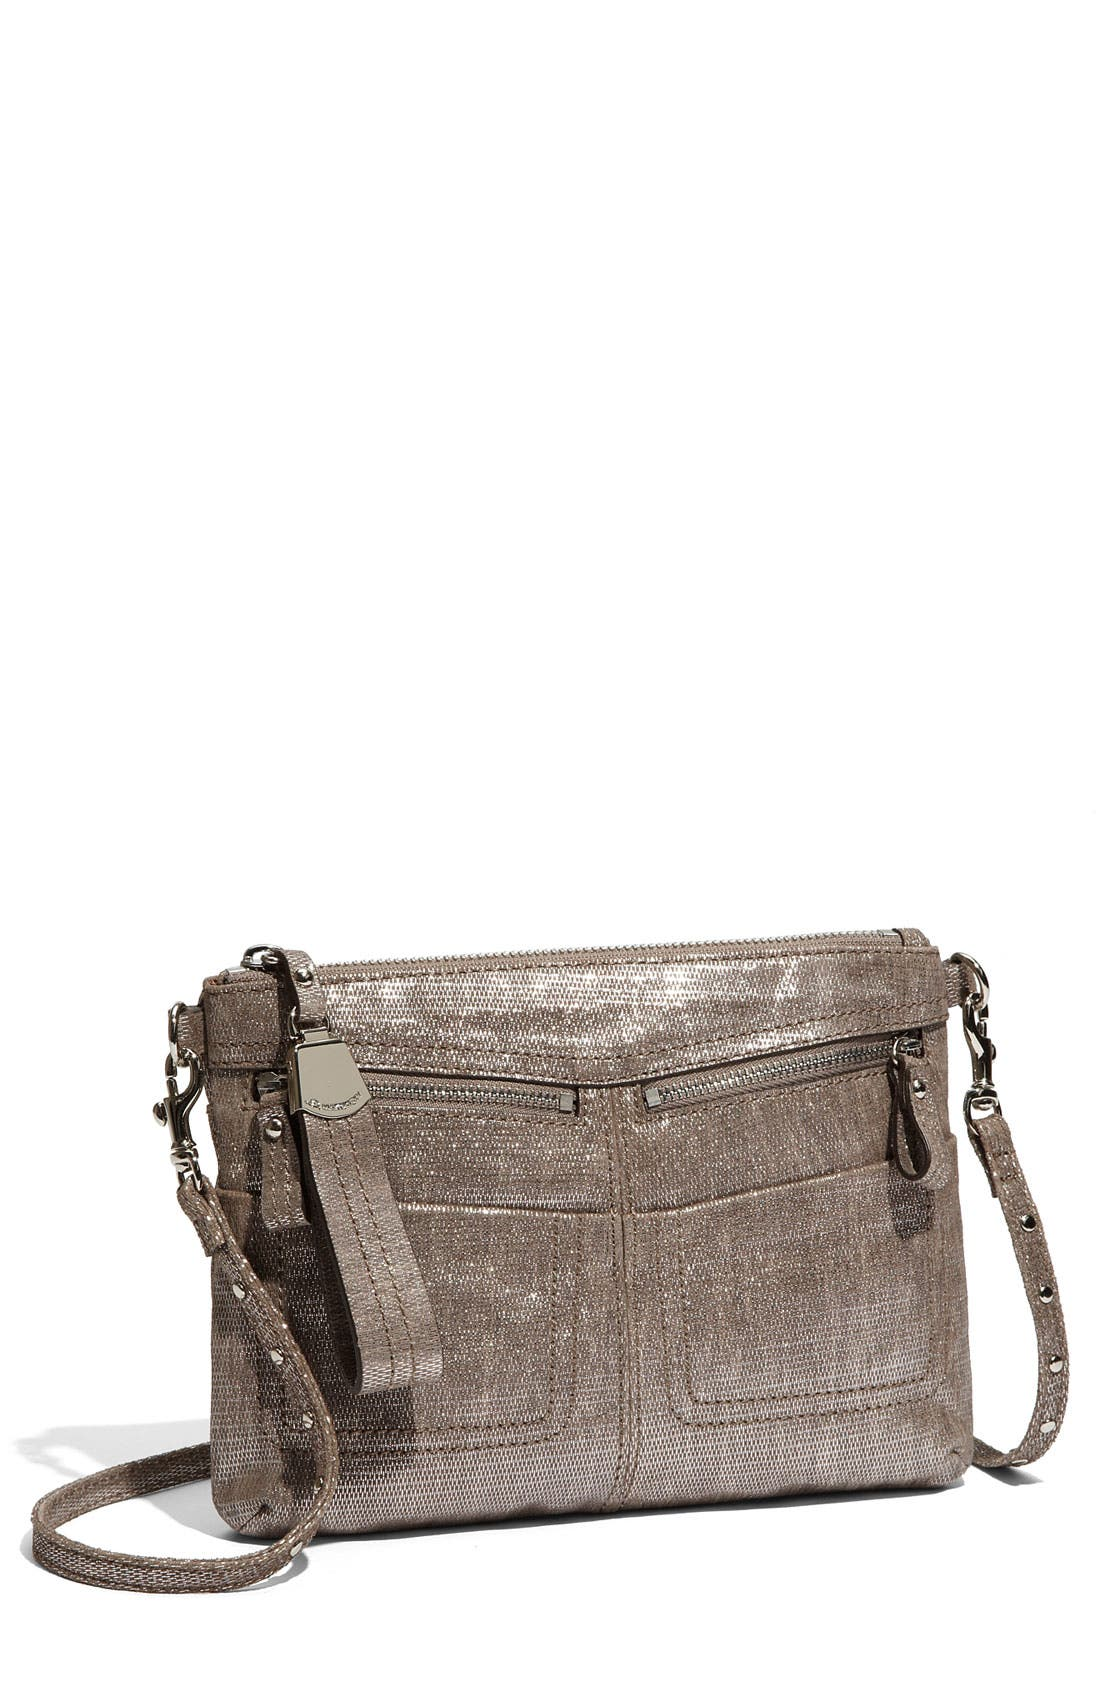 Alternate Image 1 Selected - B. Makowsky 'Ollie' Textured Leather Crossbody Bag